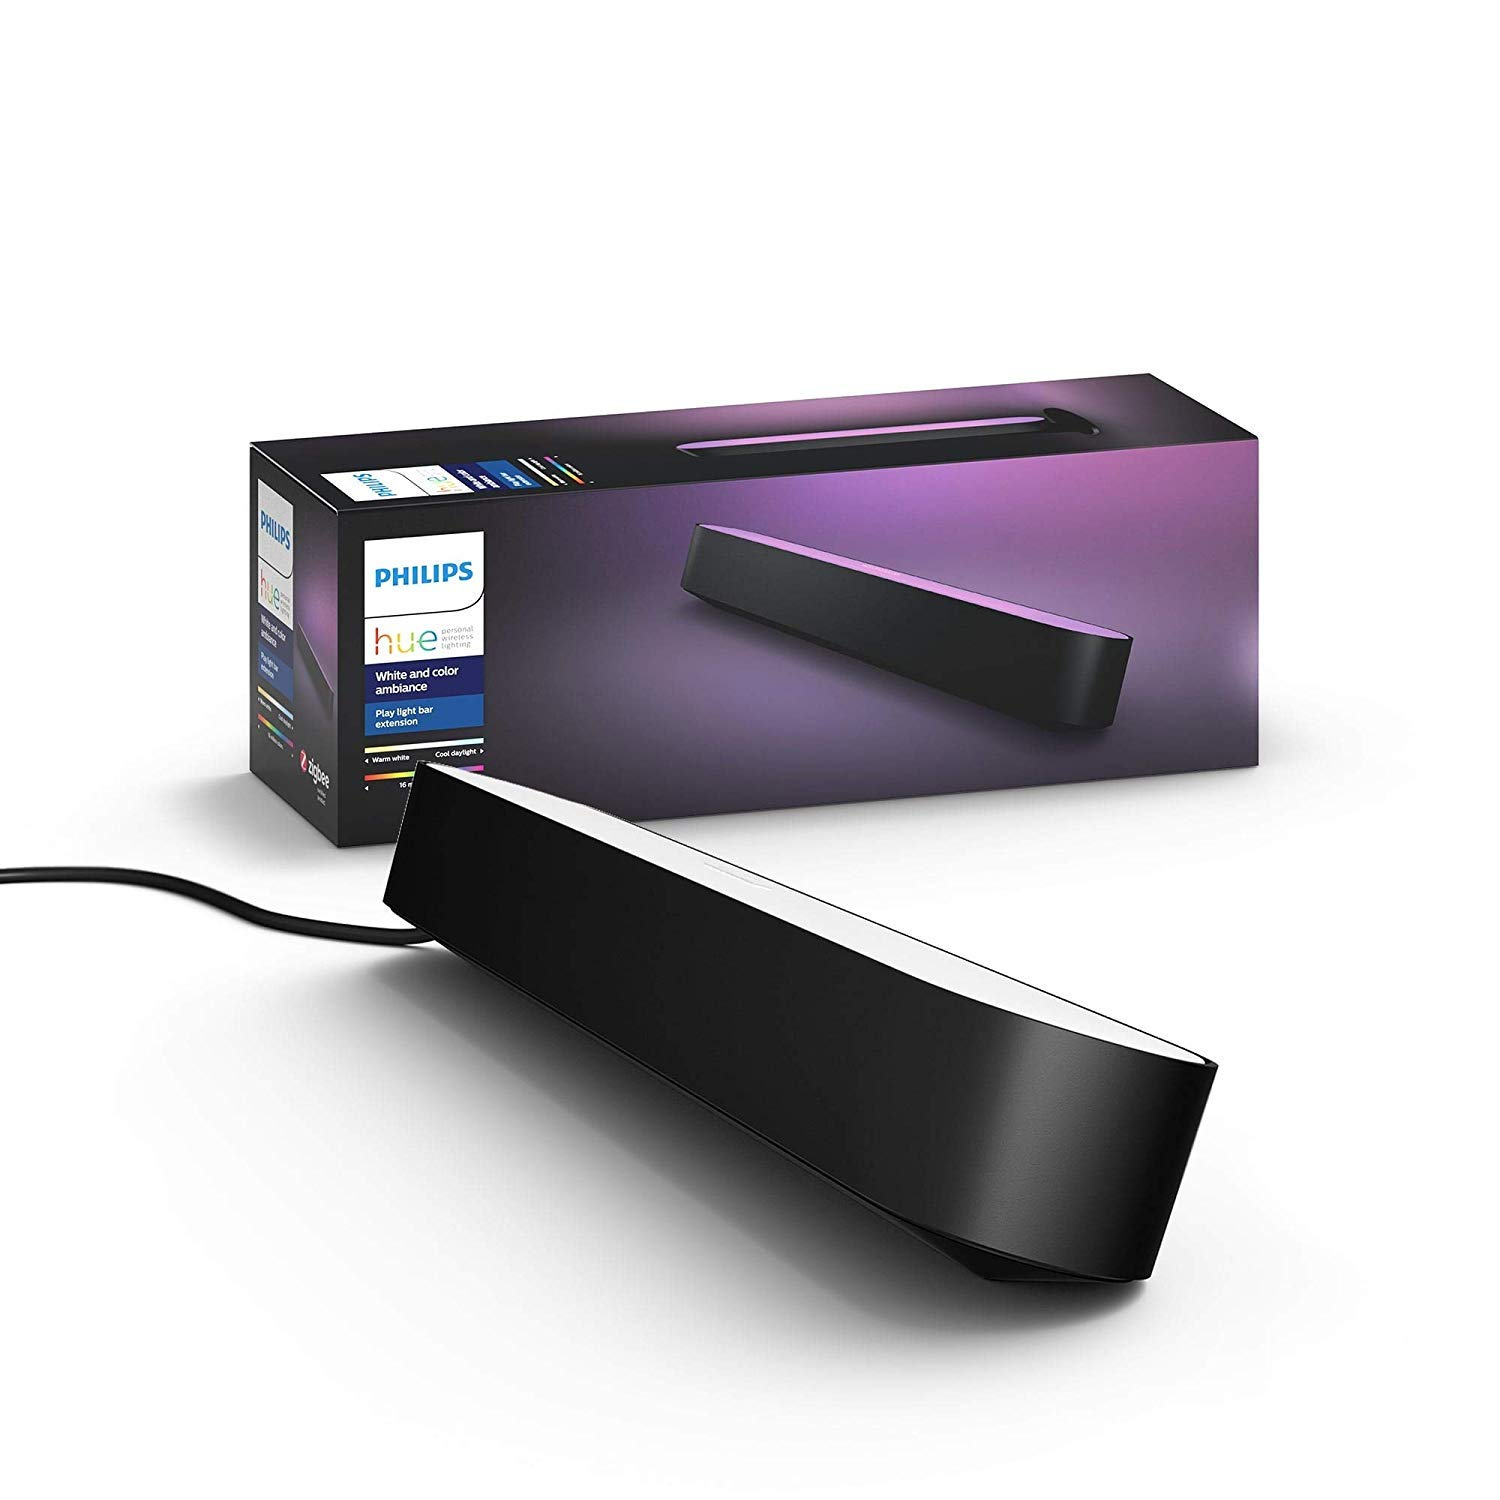 Philips Hue Play Extension (Works with Alexa), Black